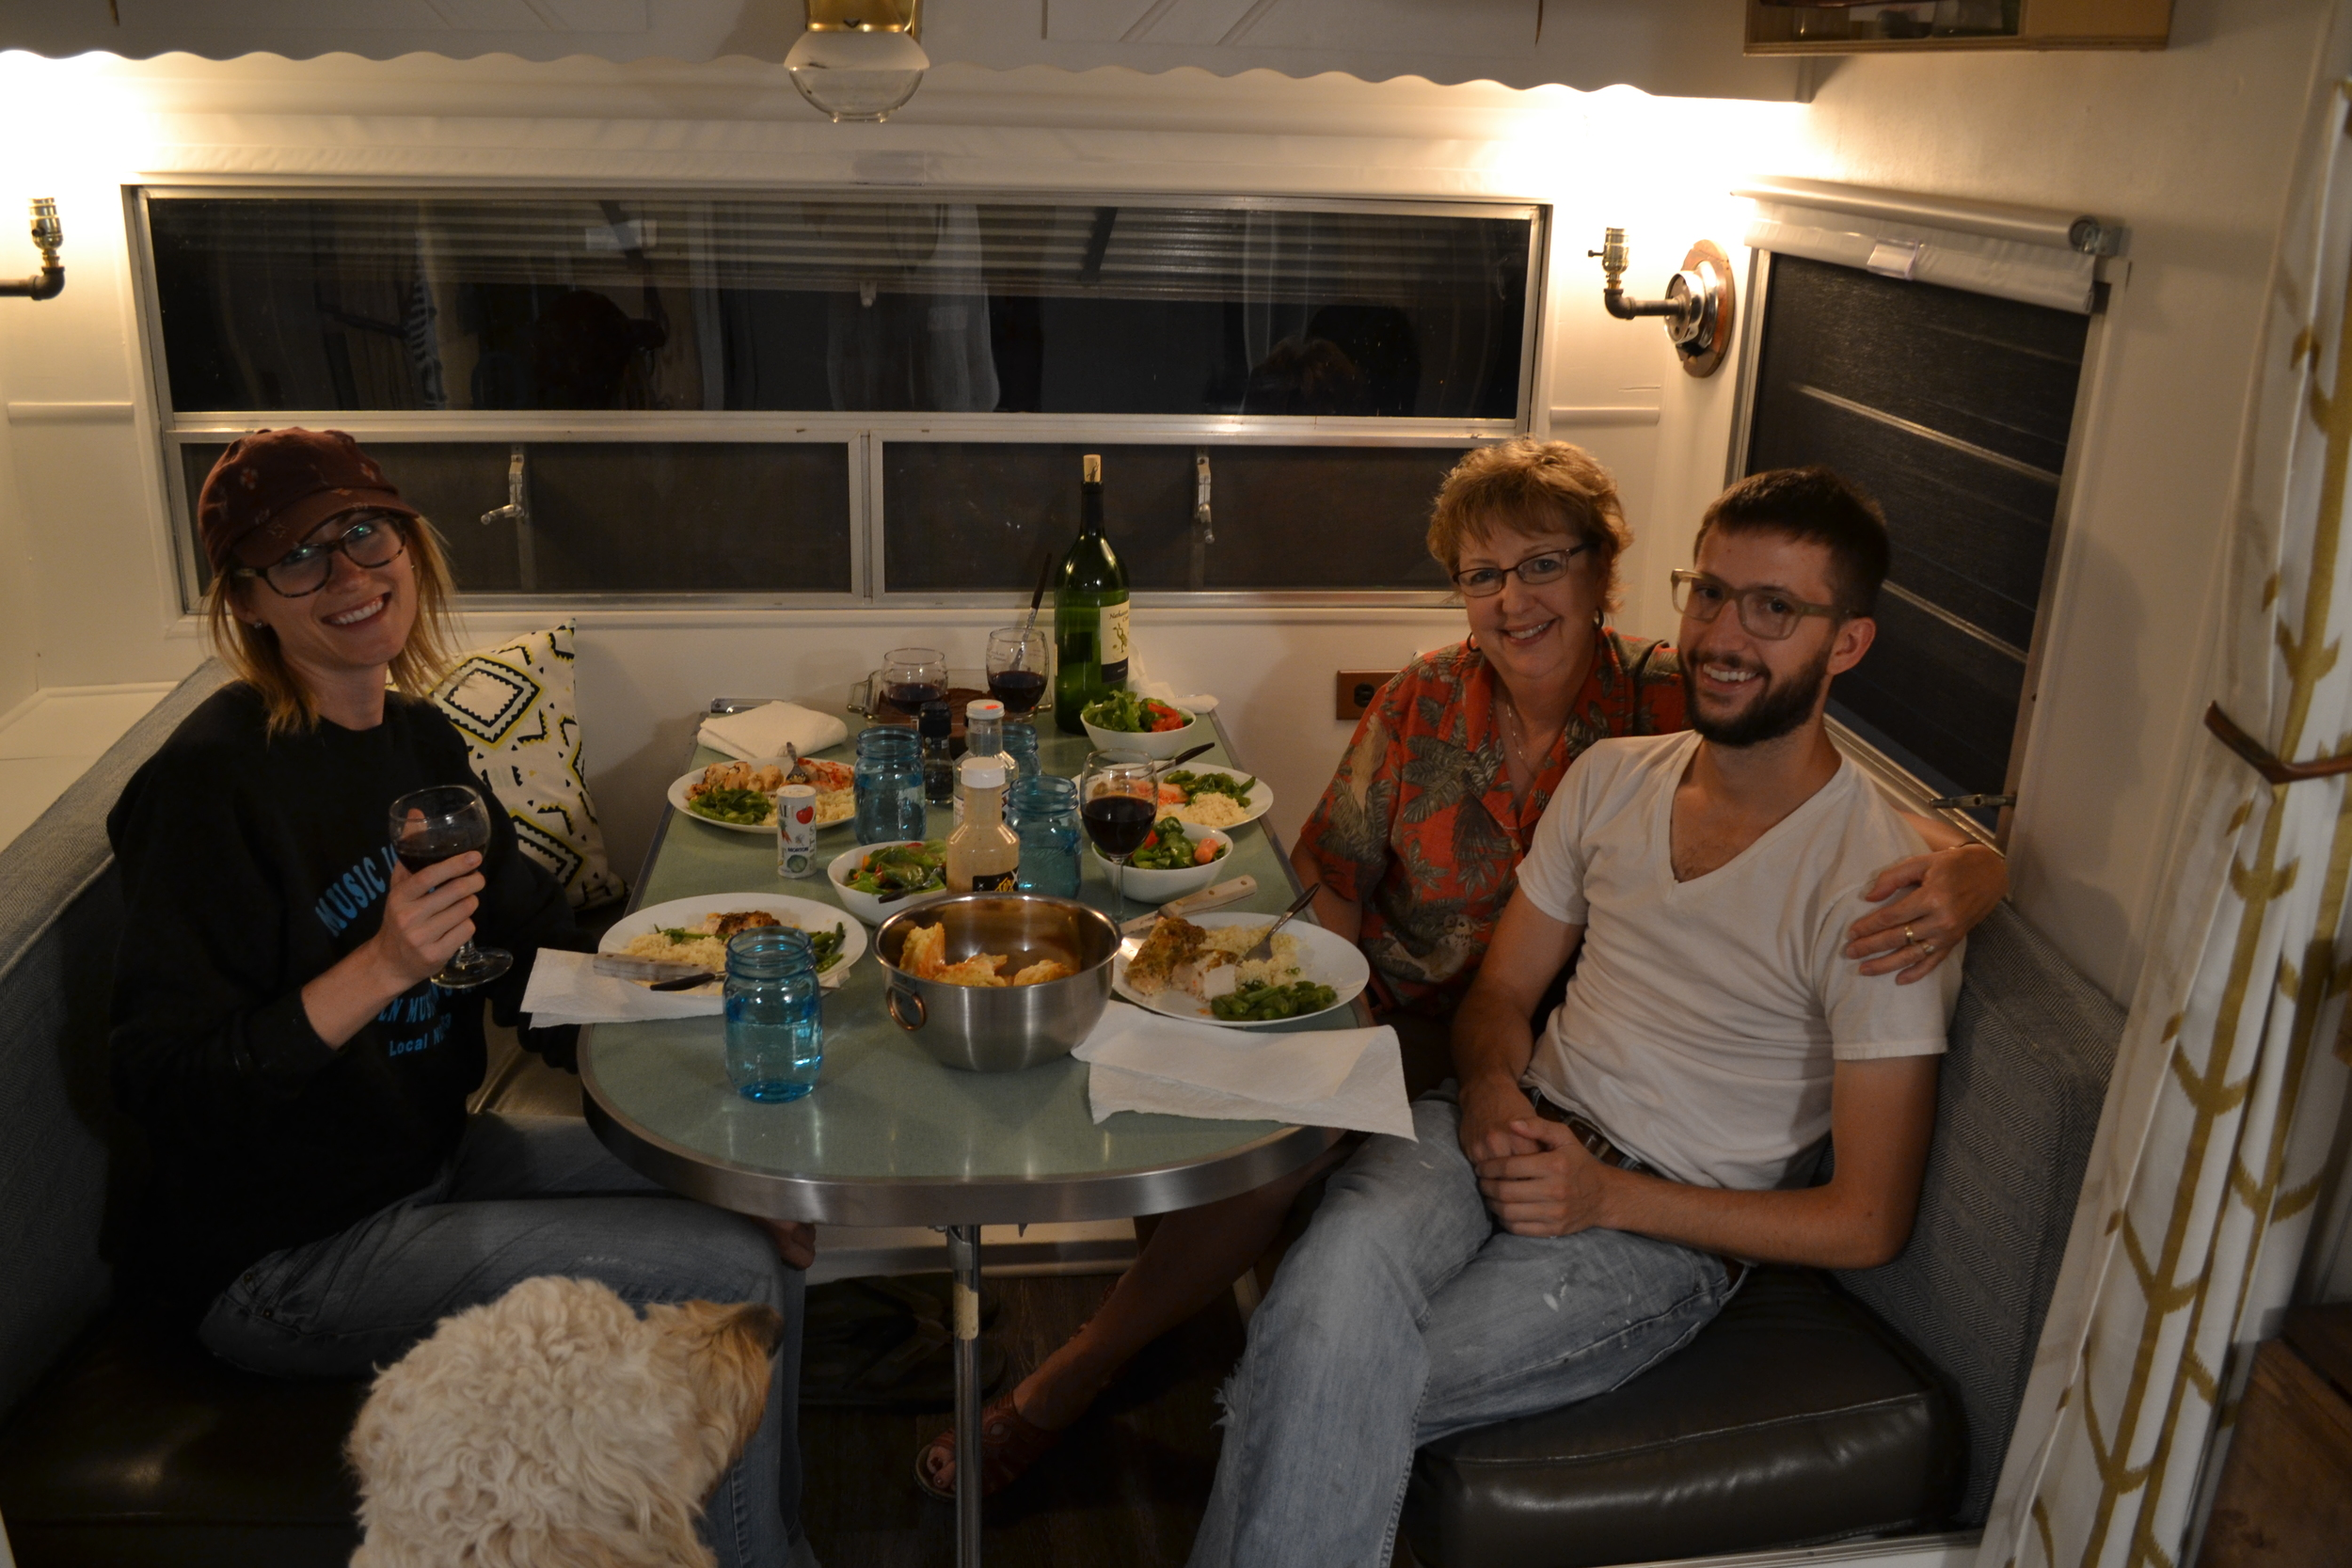 A shot of our first meal in Elsie! Baked chicken, cheese biscuits, salad and a bottle of wine. From L to R: Mel, Mary Vaughan, Carson. Not pictured: Jerry Vaughan (he's taking the photo!).